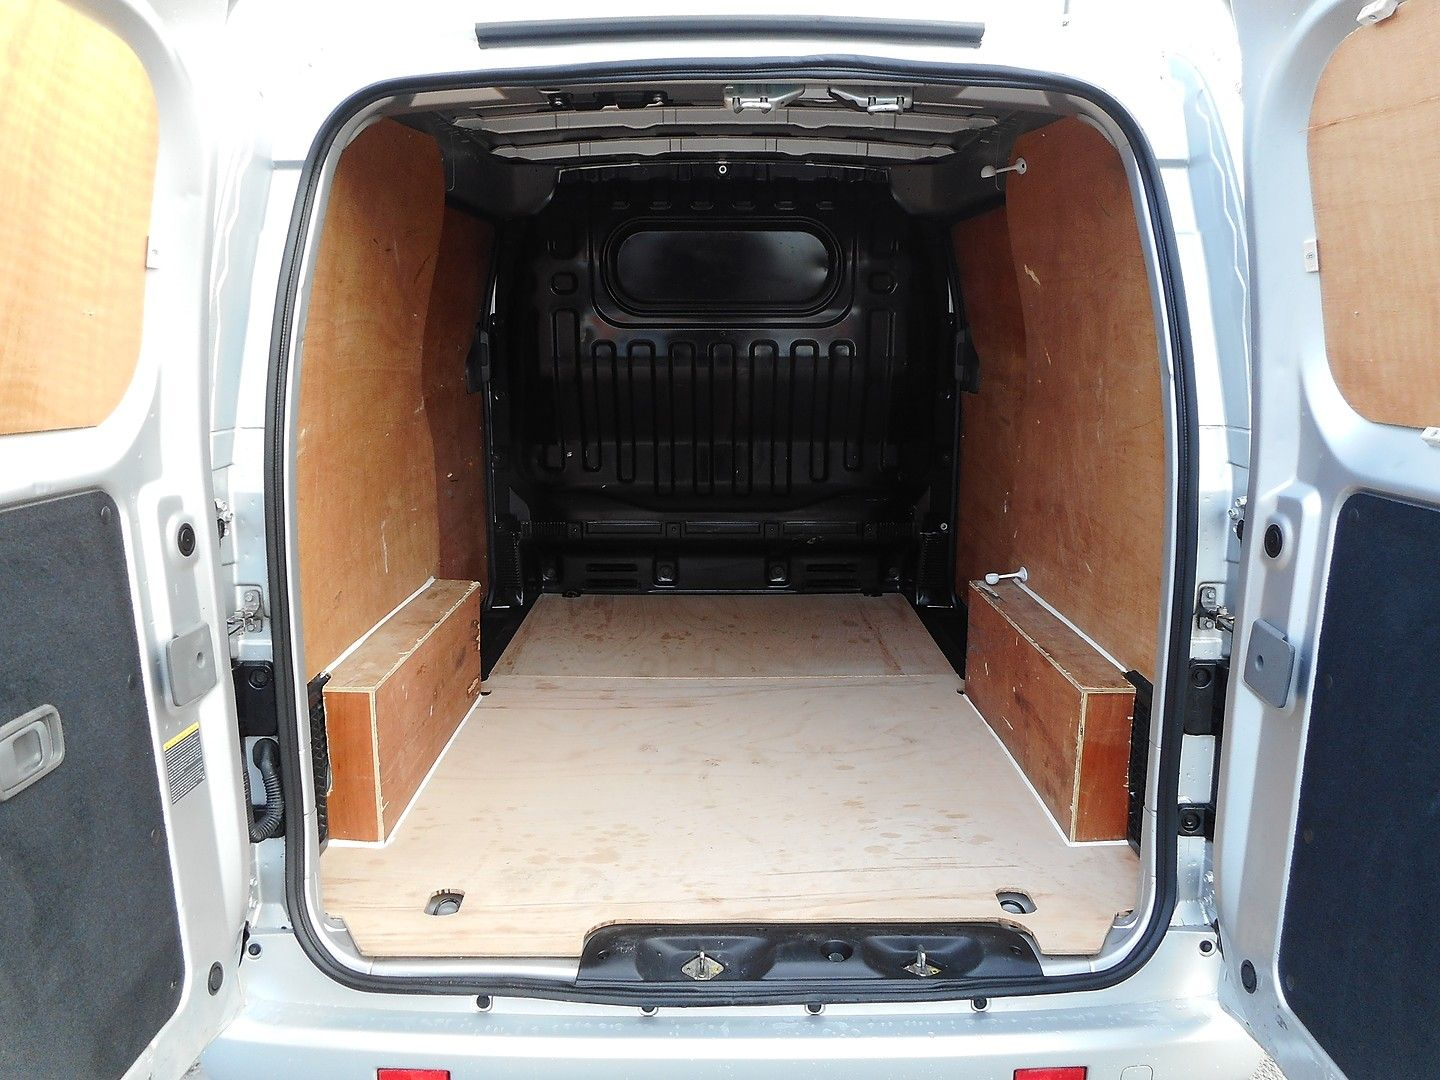 NISSAN NV200 Tekna 1.5 dCi 110PS (2014) - Picture 18